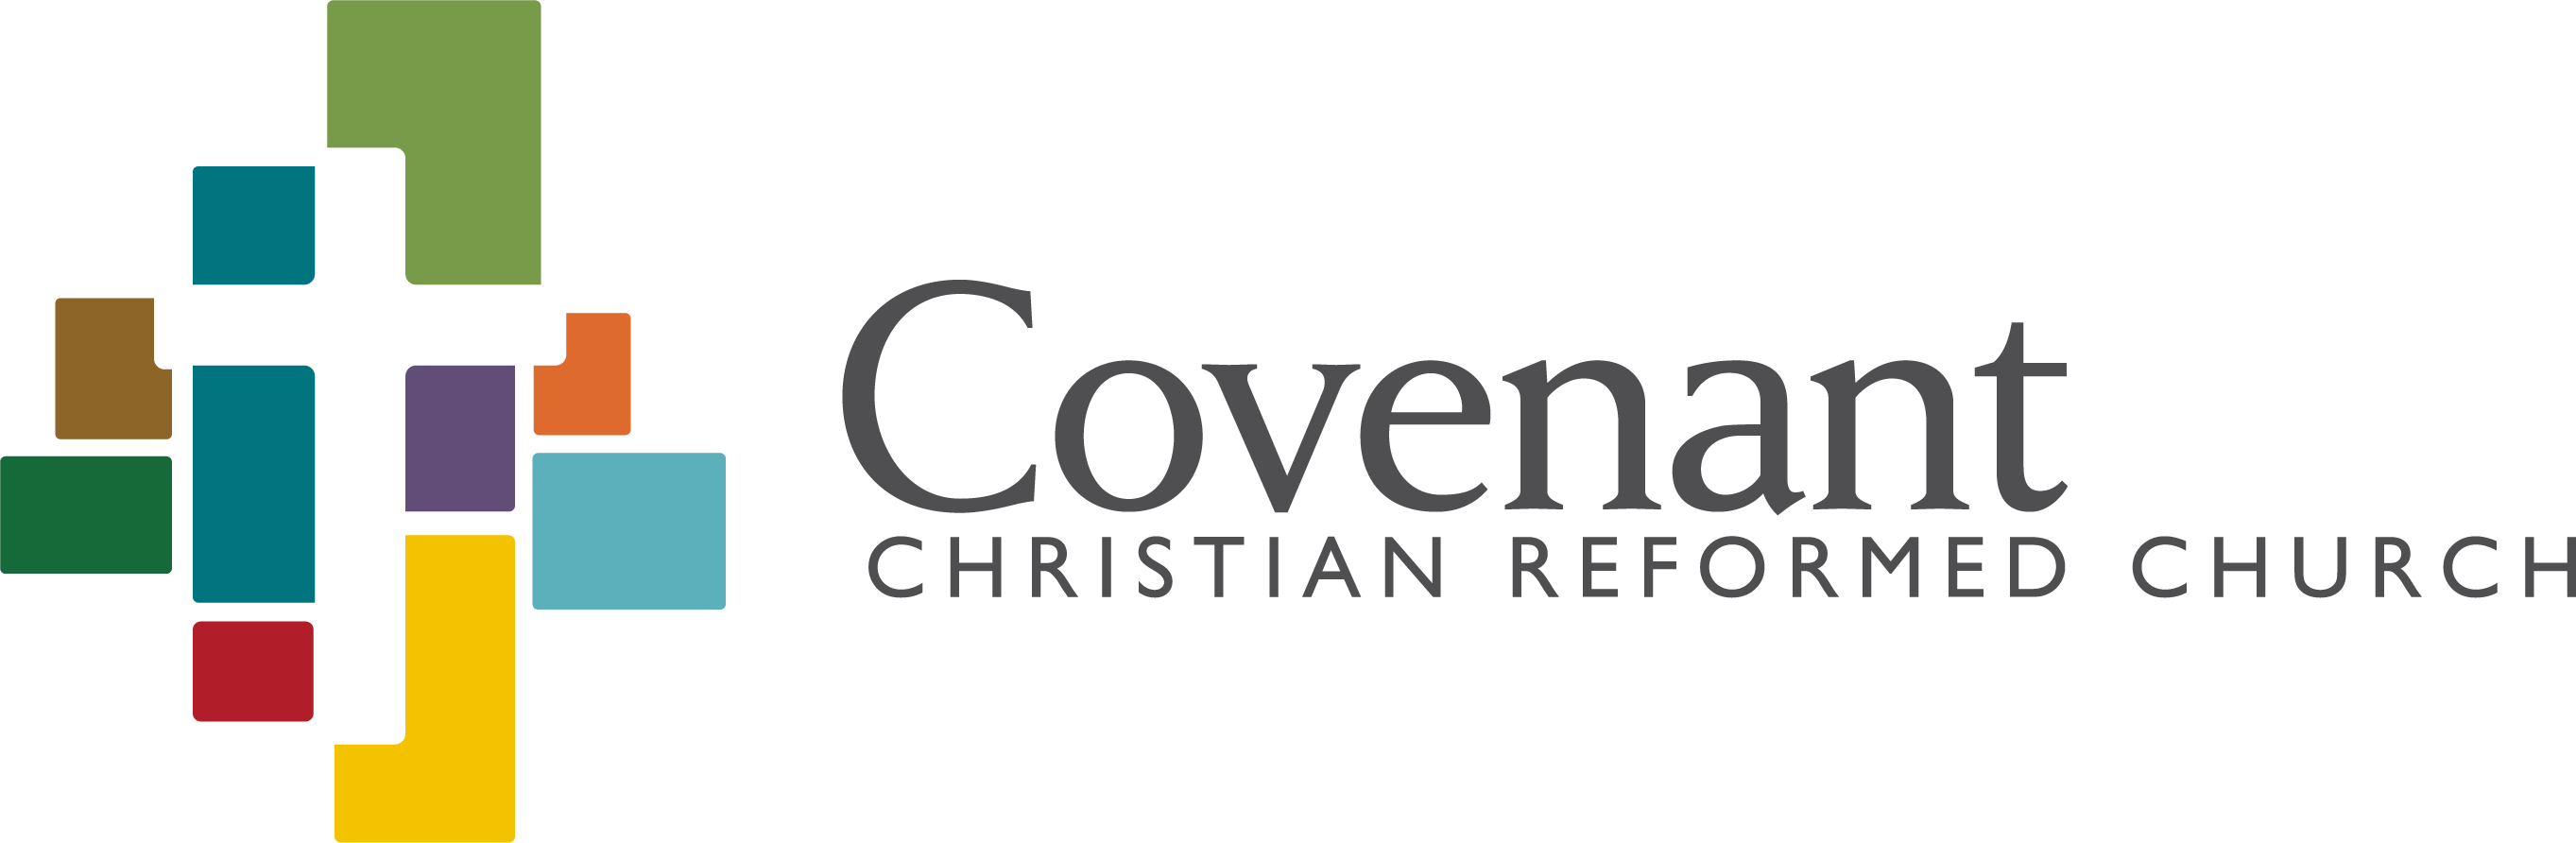 Covenant Christian Reformed Church